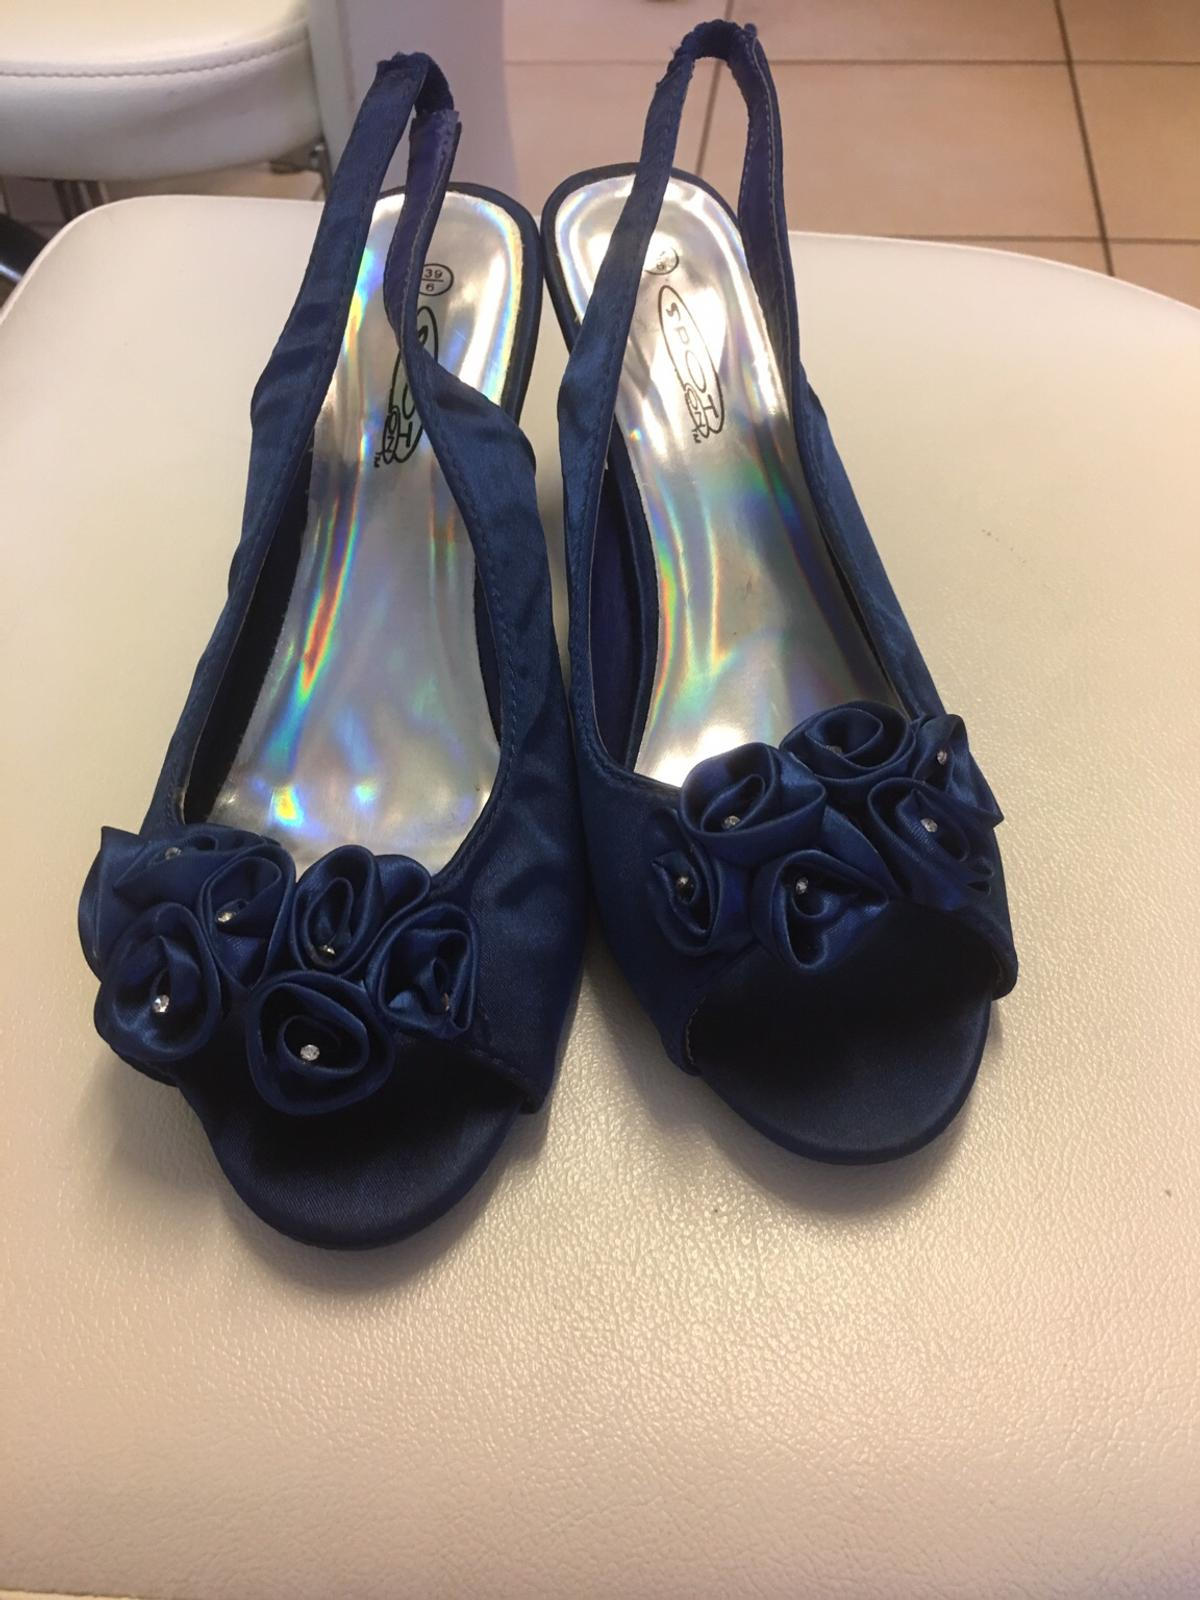 1a11e53331a6 Party shoes size 6 39 in London Borough of Harrow for £10.00 for ...